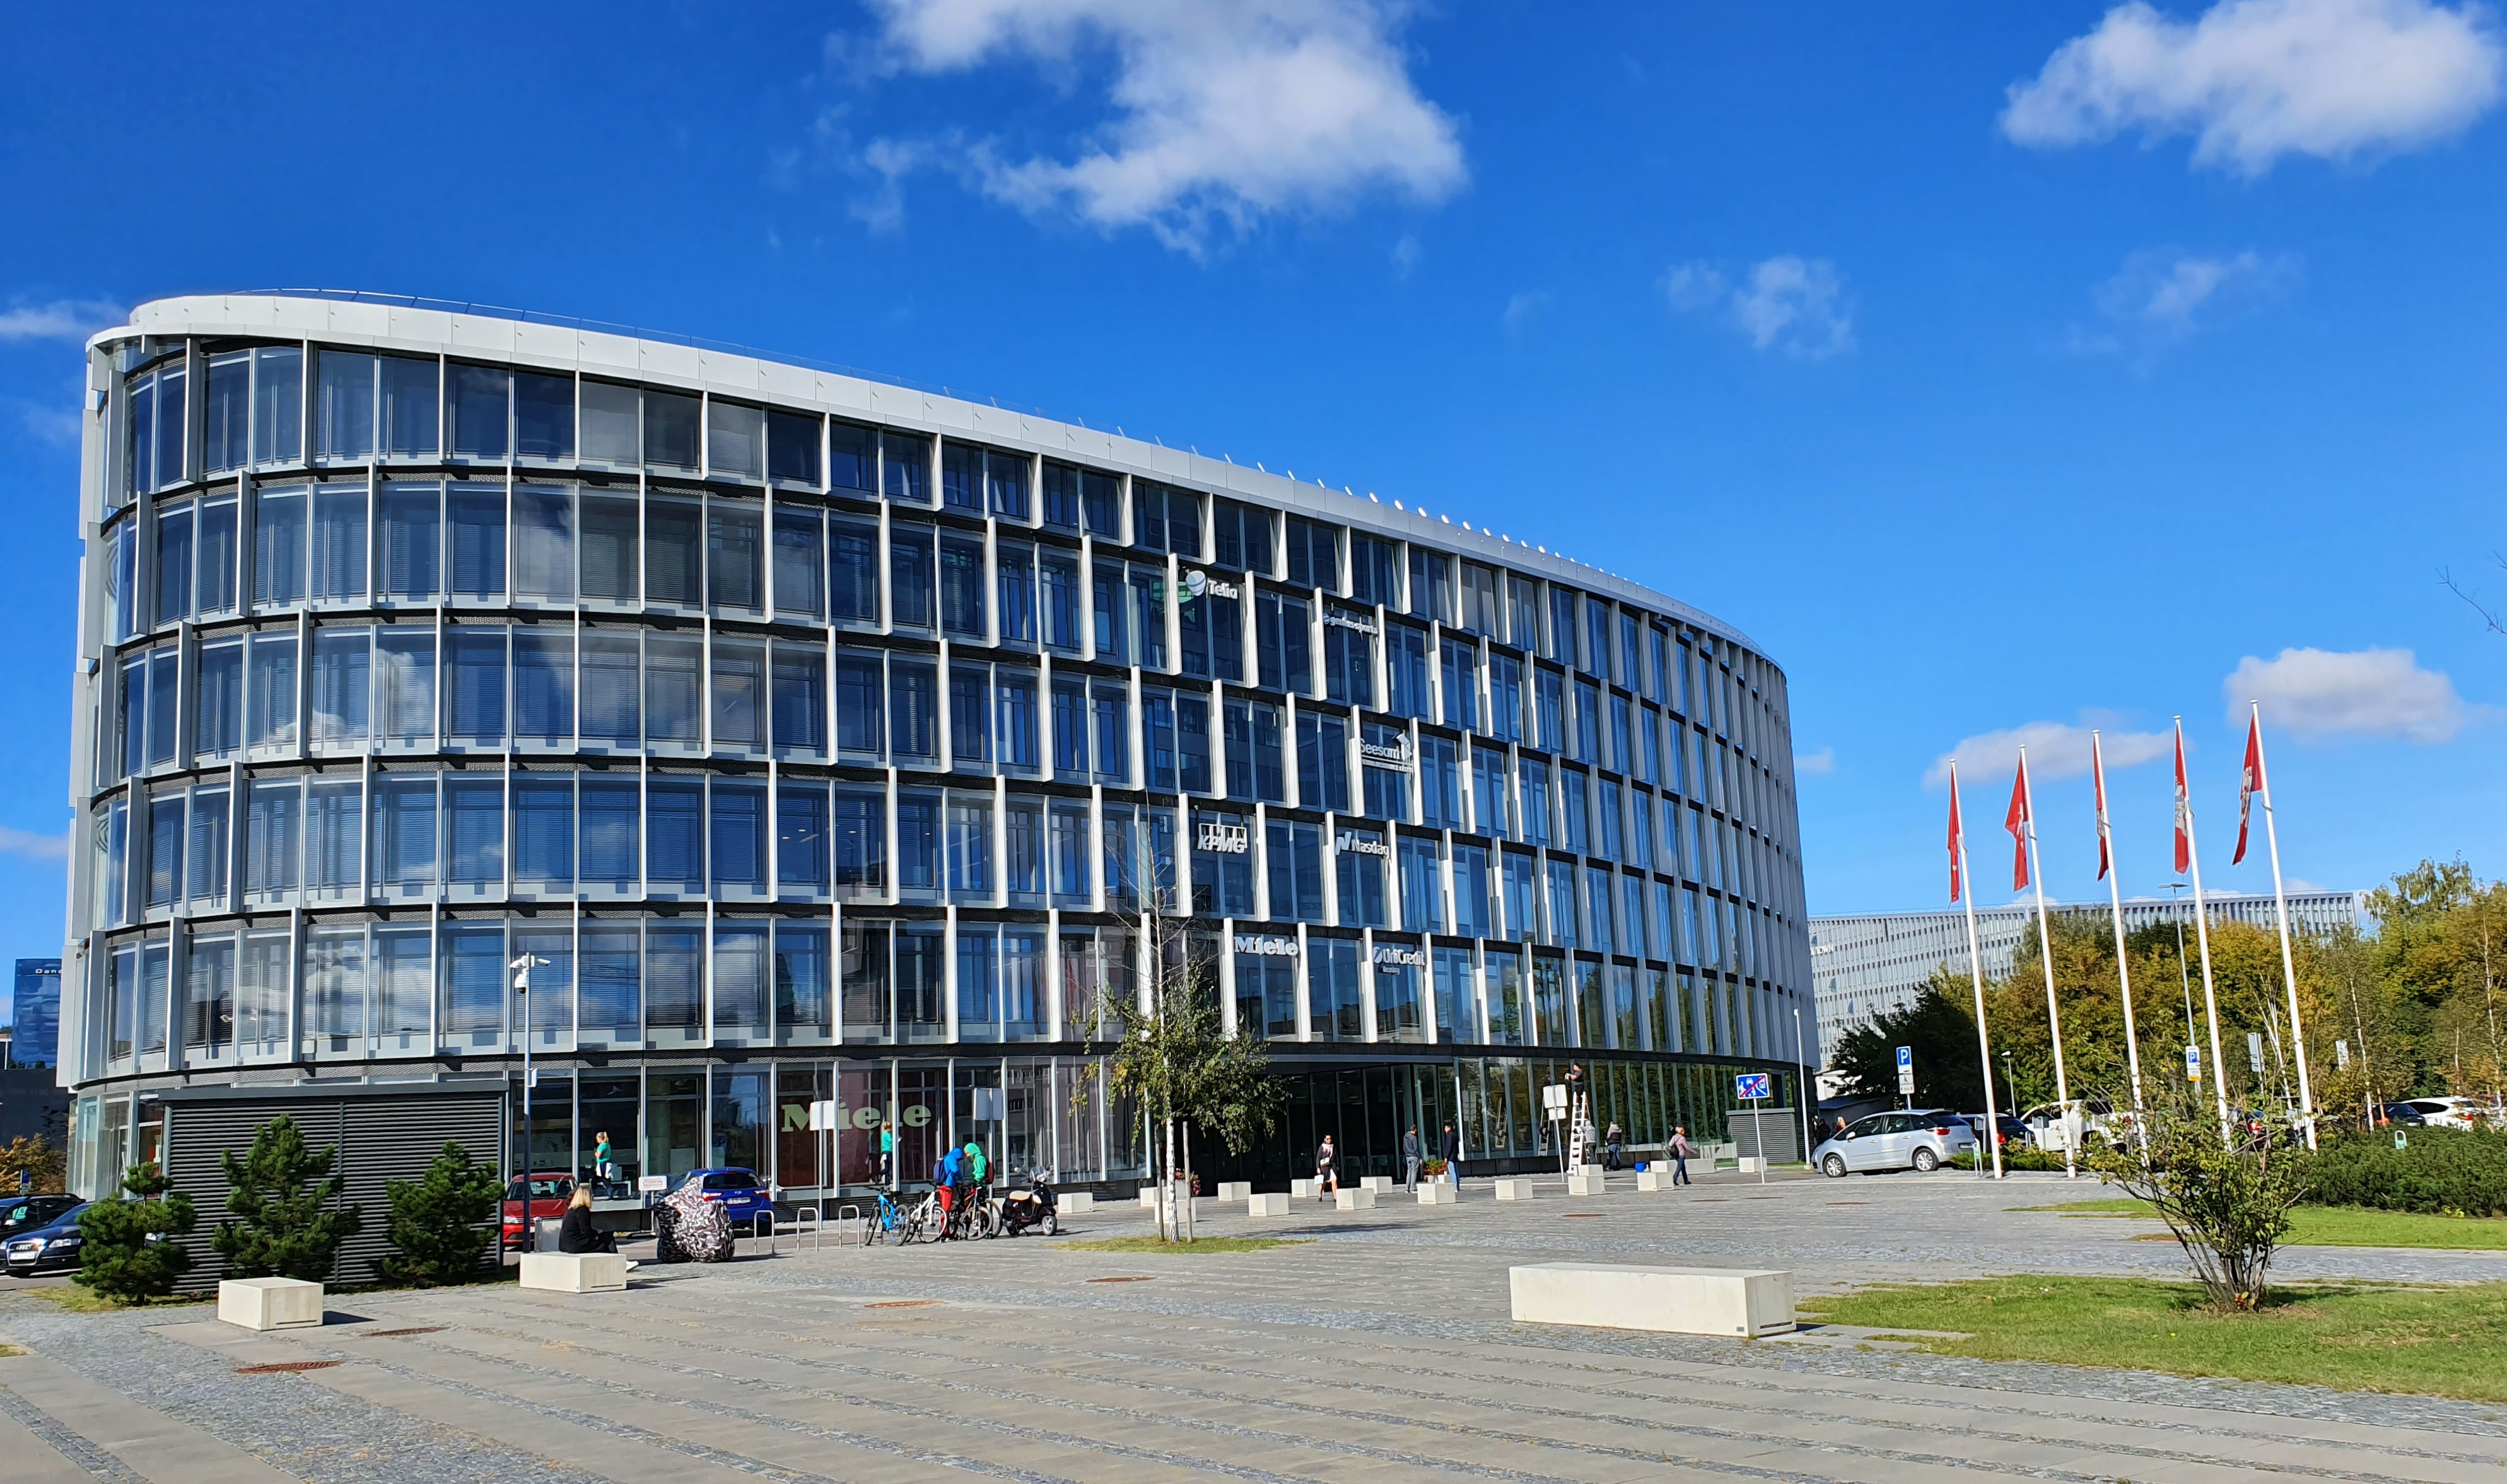 File:K29 business centre in Vilnius.jpg - Wikipedia